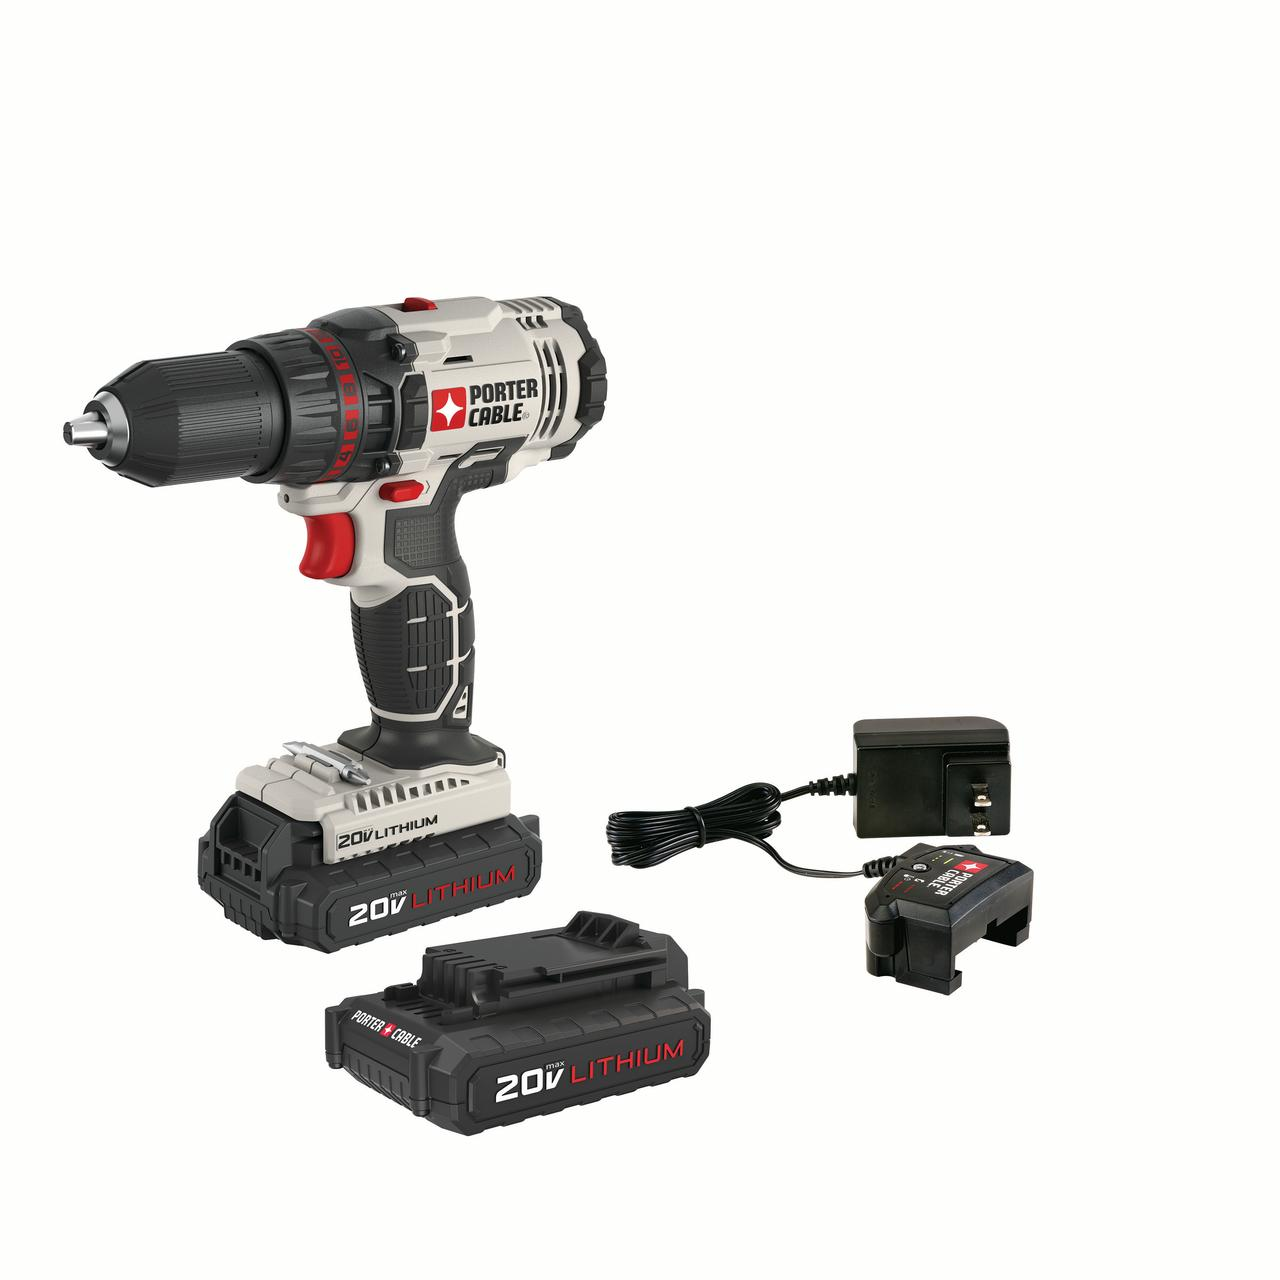 PORTER CABLE PCC601LB - 20V MAX 1/2-Inch Lithium-Ion Compact Cordless Drill